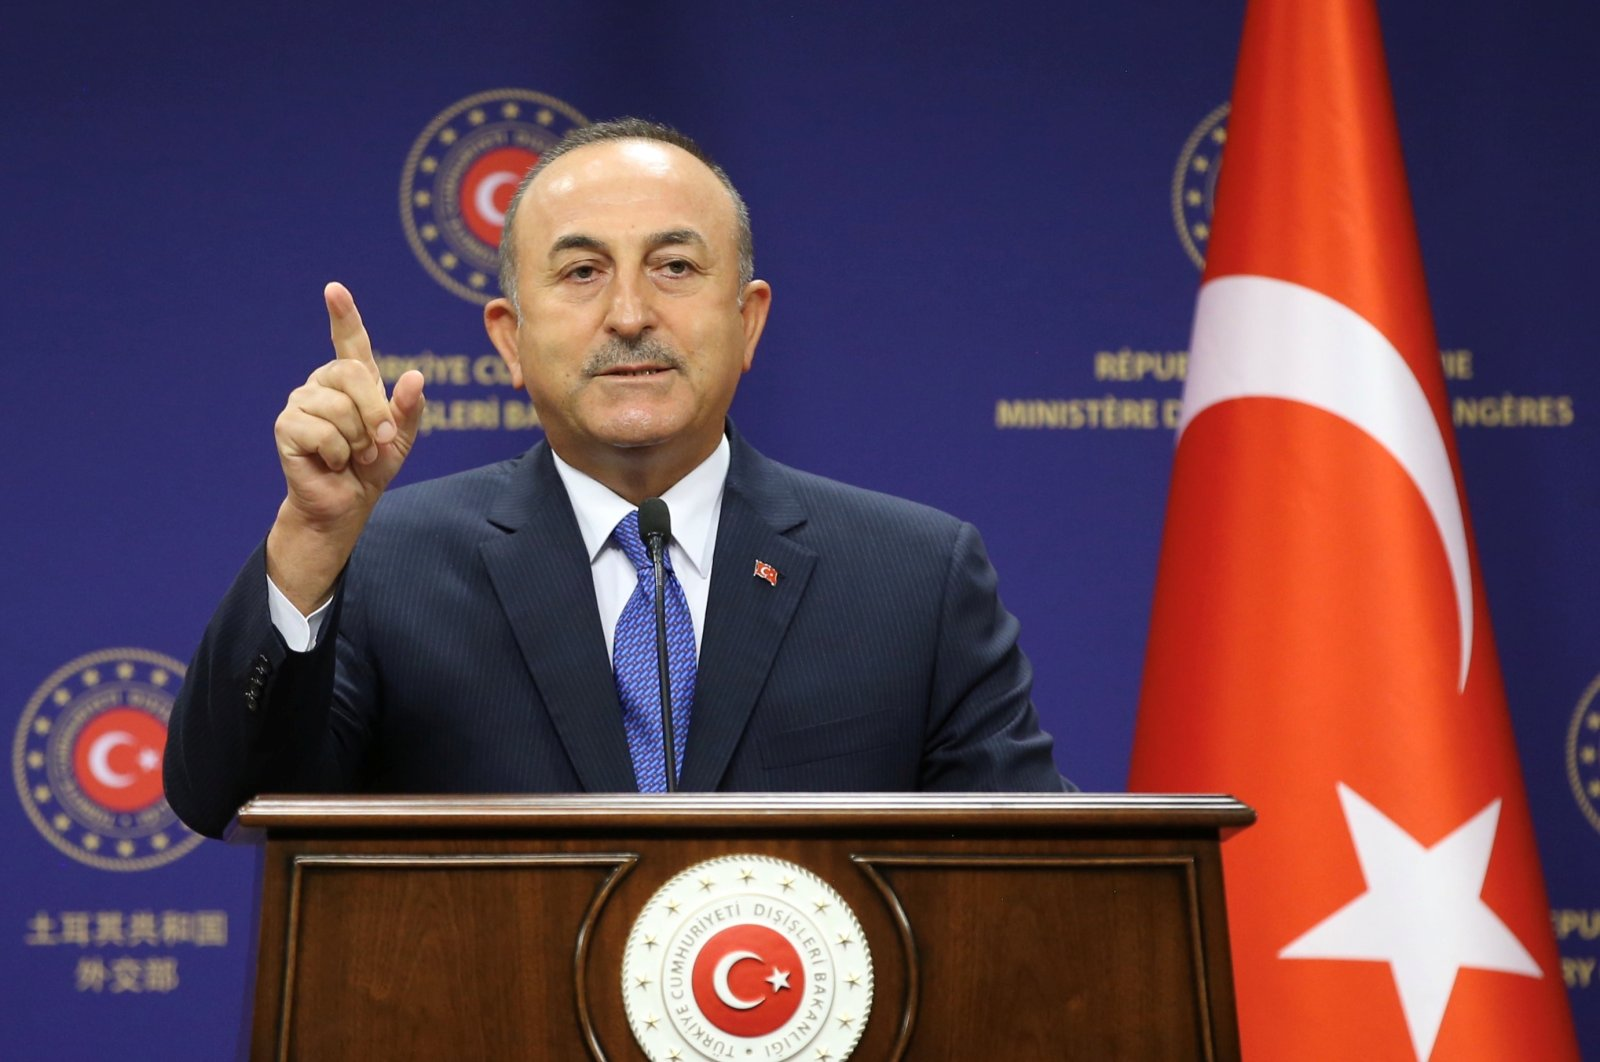 Turkish Foreign Minister Mevlüt Çavuşoğlu attends a press conference in Ankara, Turkey, Aug. 25, 2020. Turkish Foreign Ministry/Handout via REUTERS